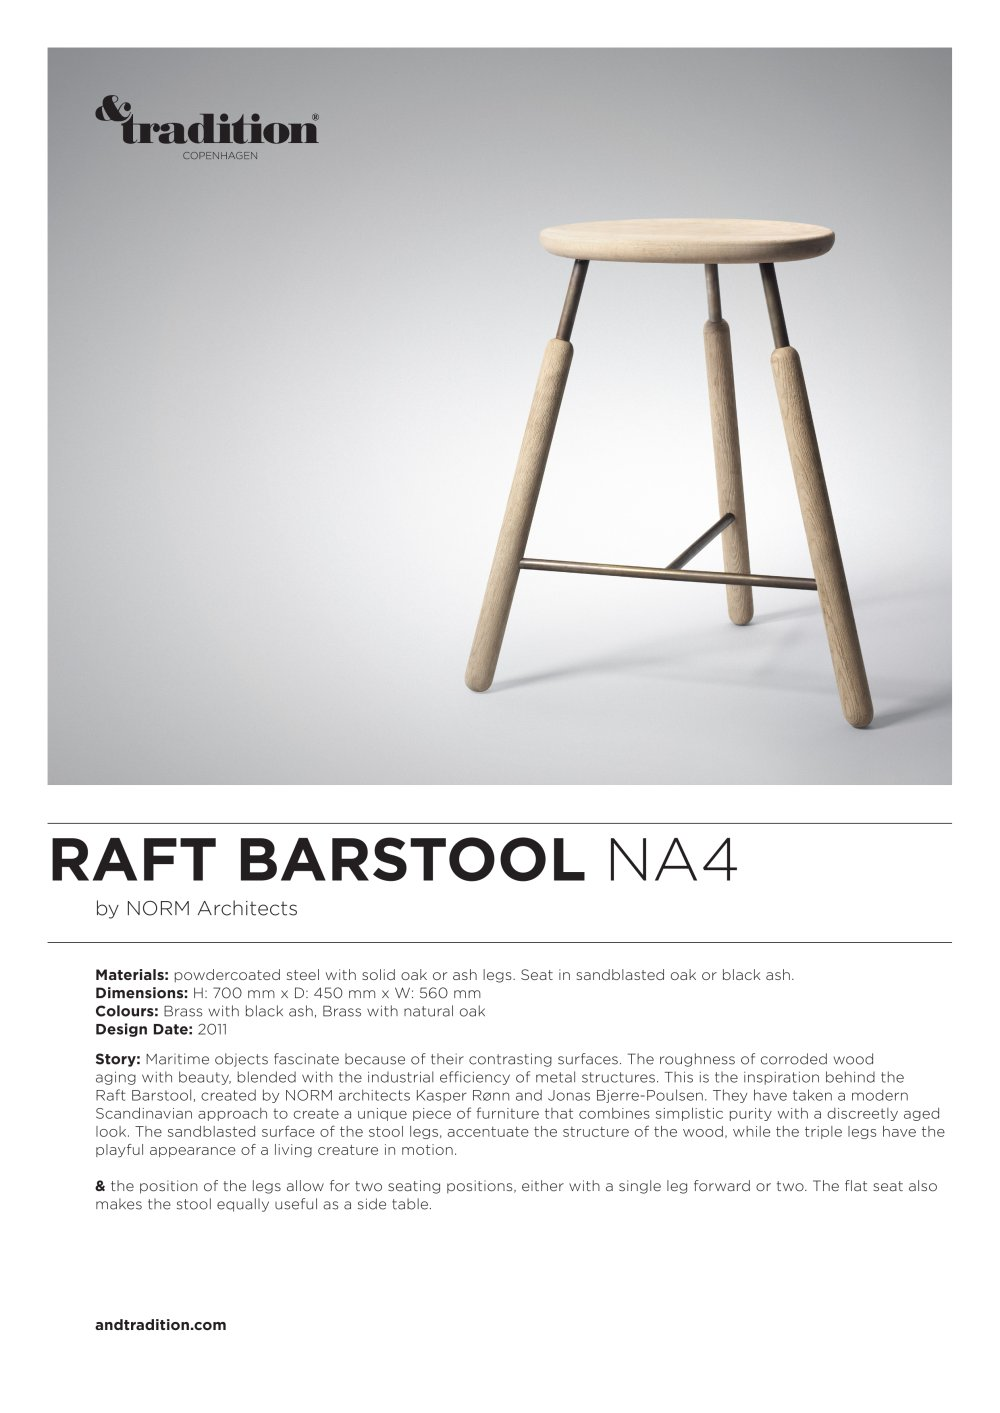 Raft Bar Stool NA4 - Andtradition - PDF Catalogues | Documentation ...